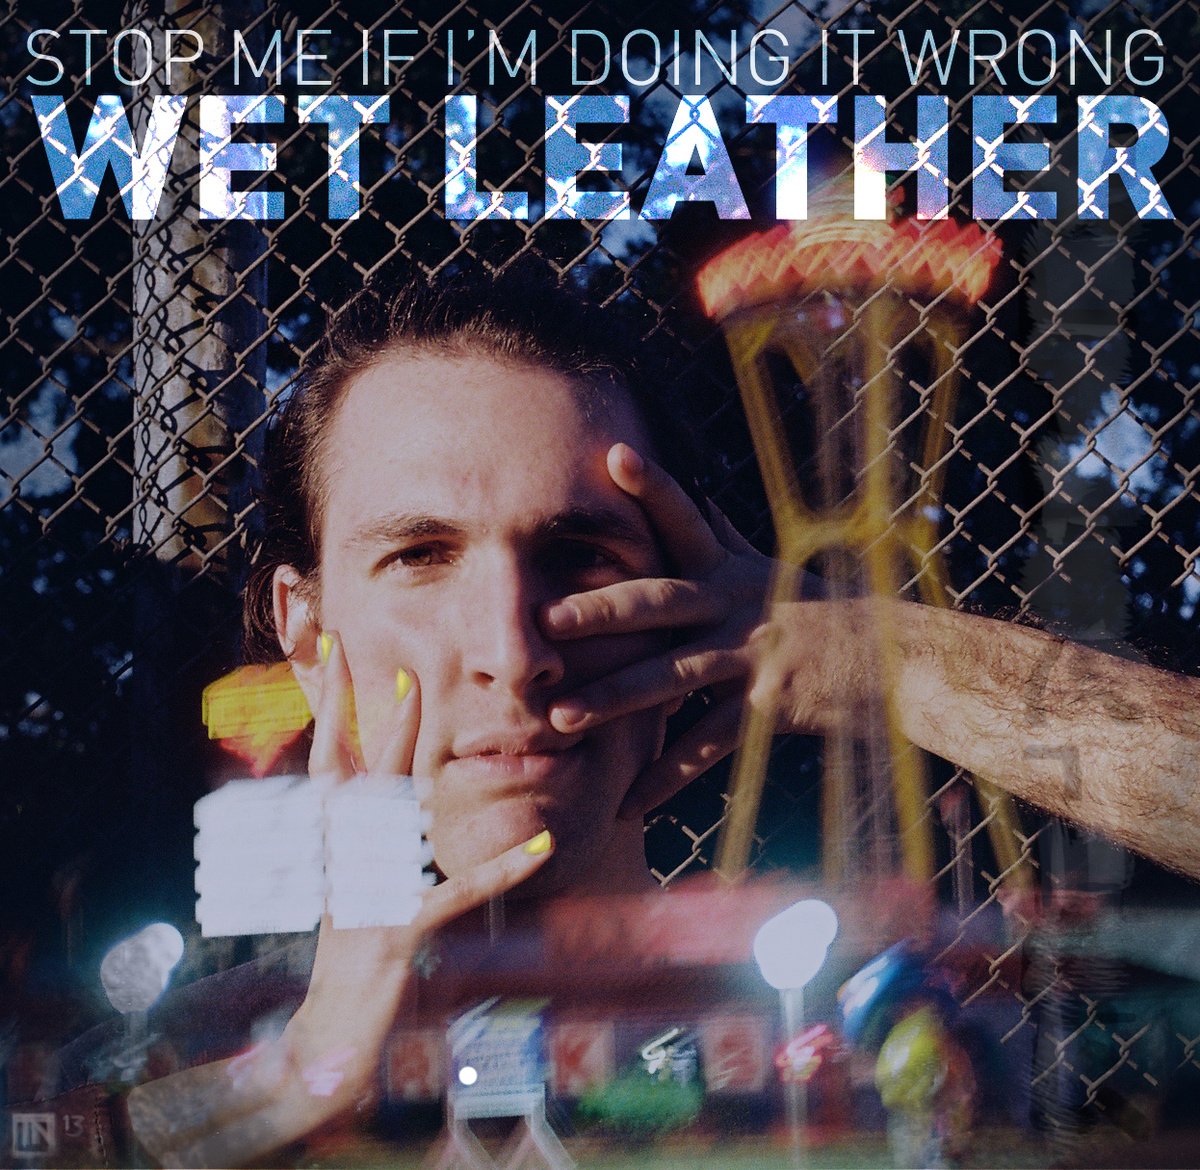 Wet Leather - Stop Me If I'm Doing It Wrong